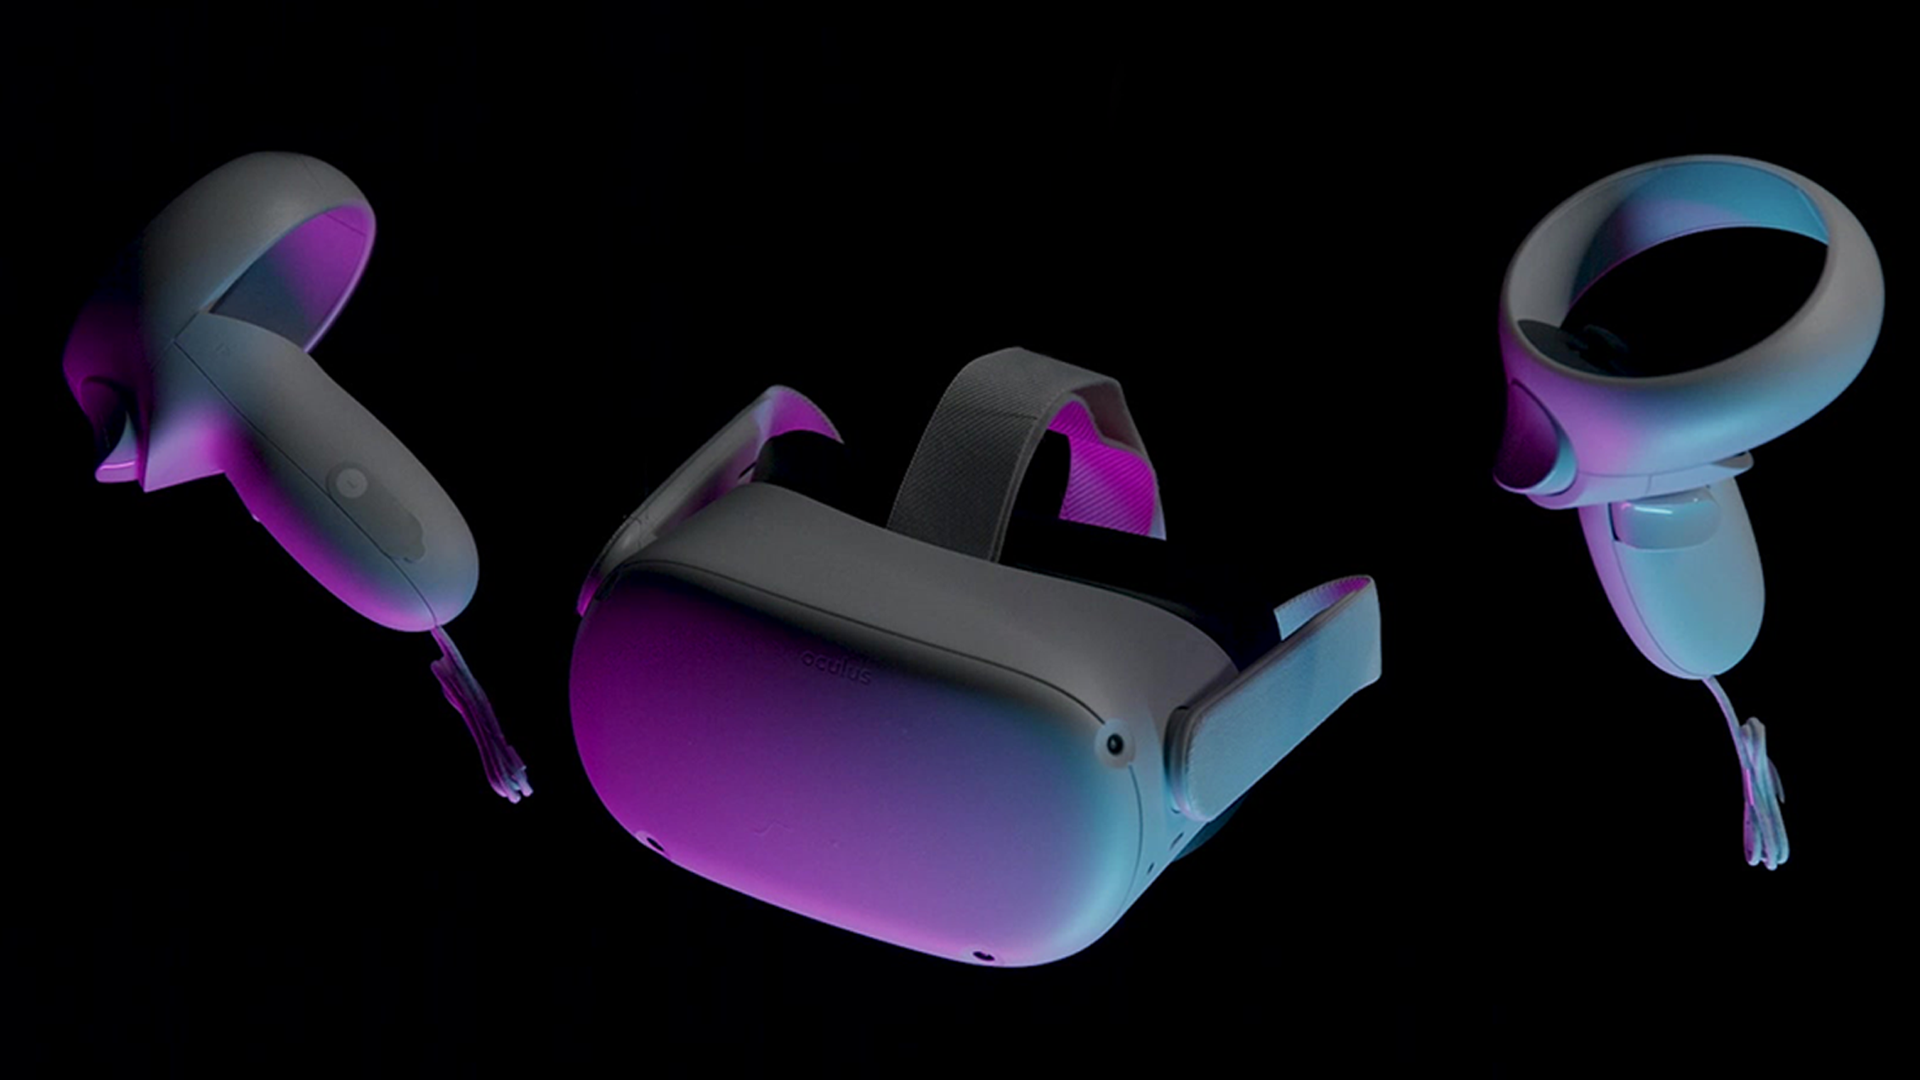 Oculus Quest 2: Virtual Reality like never before